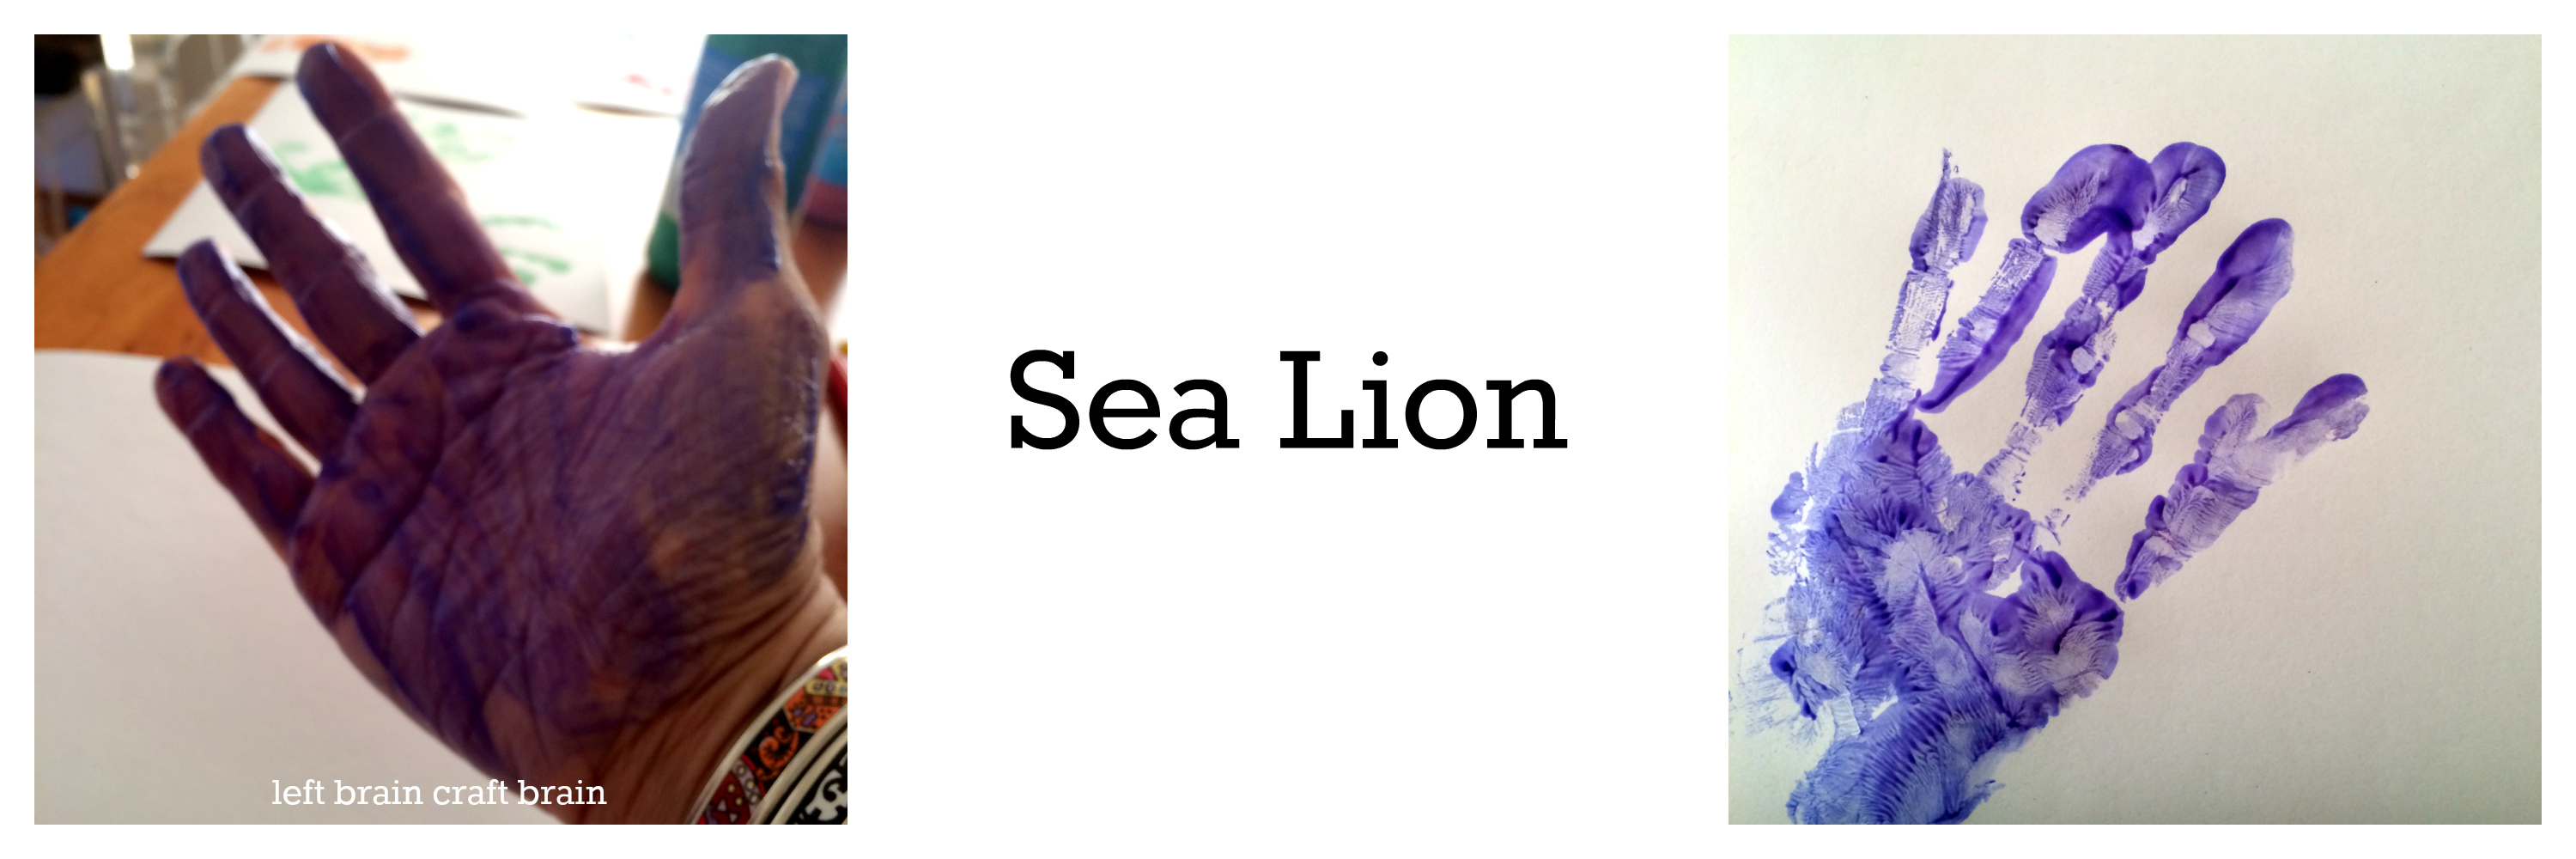 sea lion animal track hand print left brain craft brain